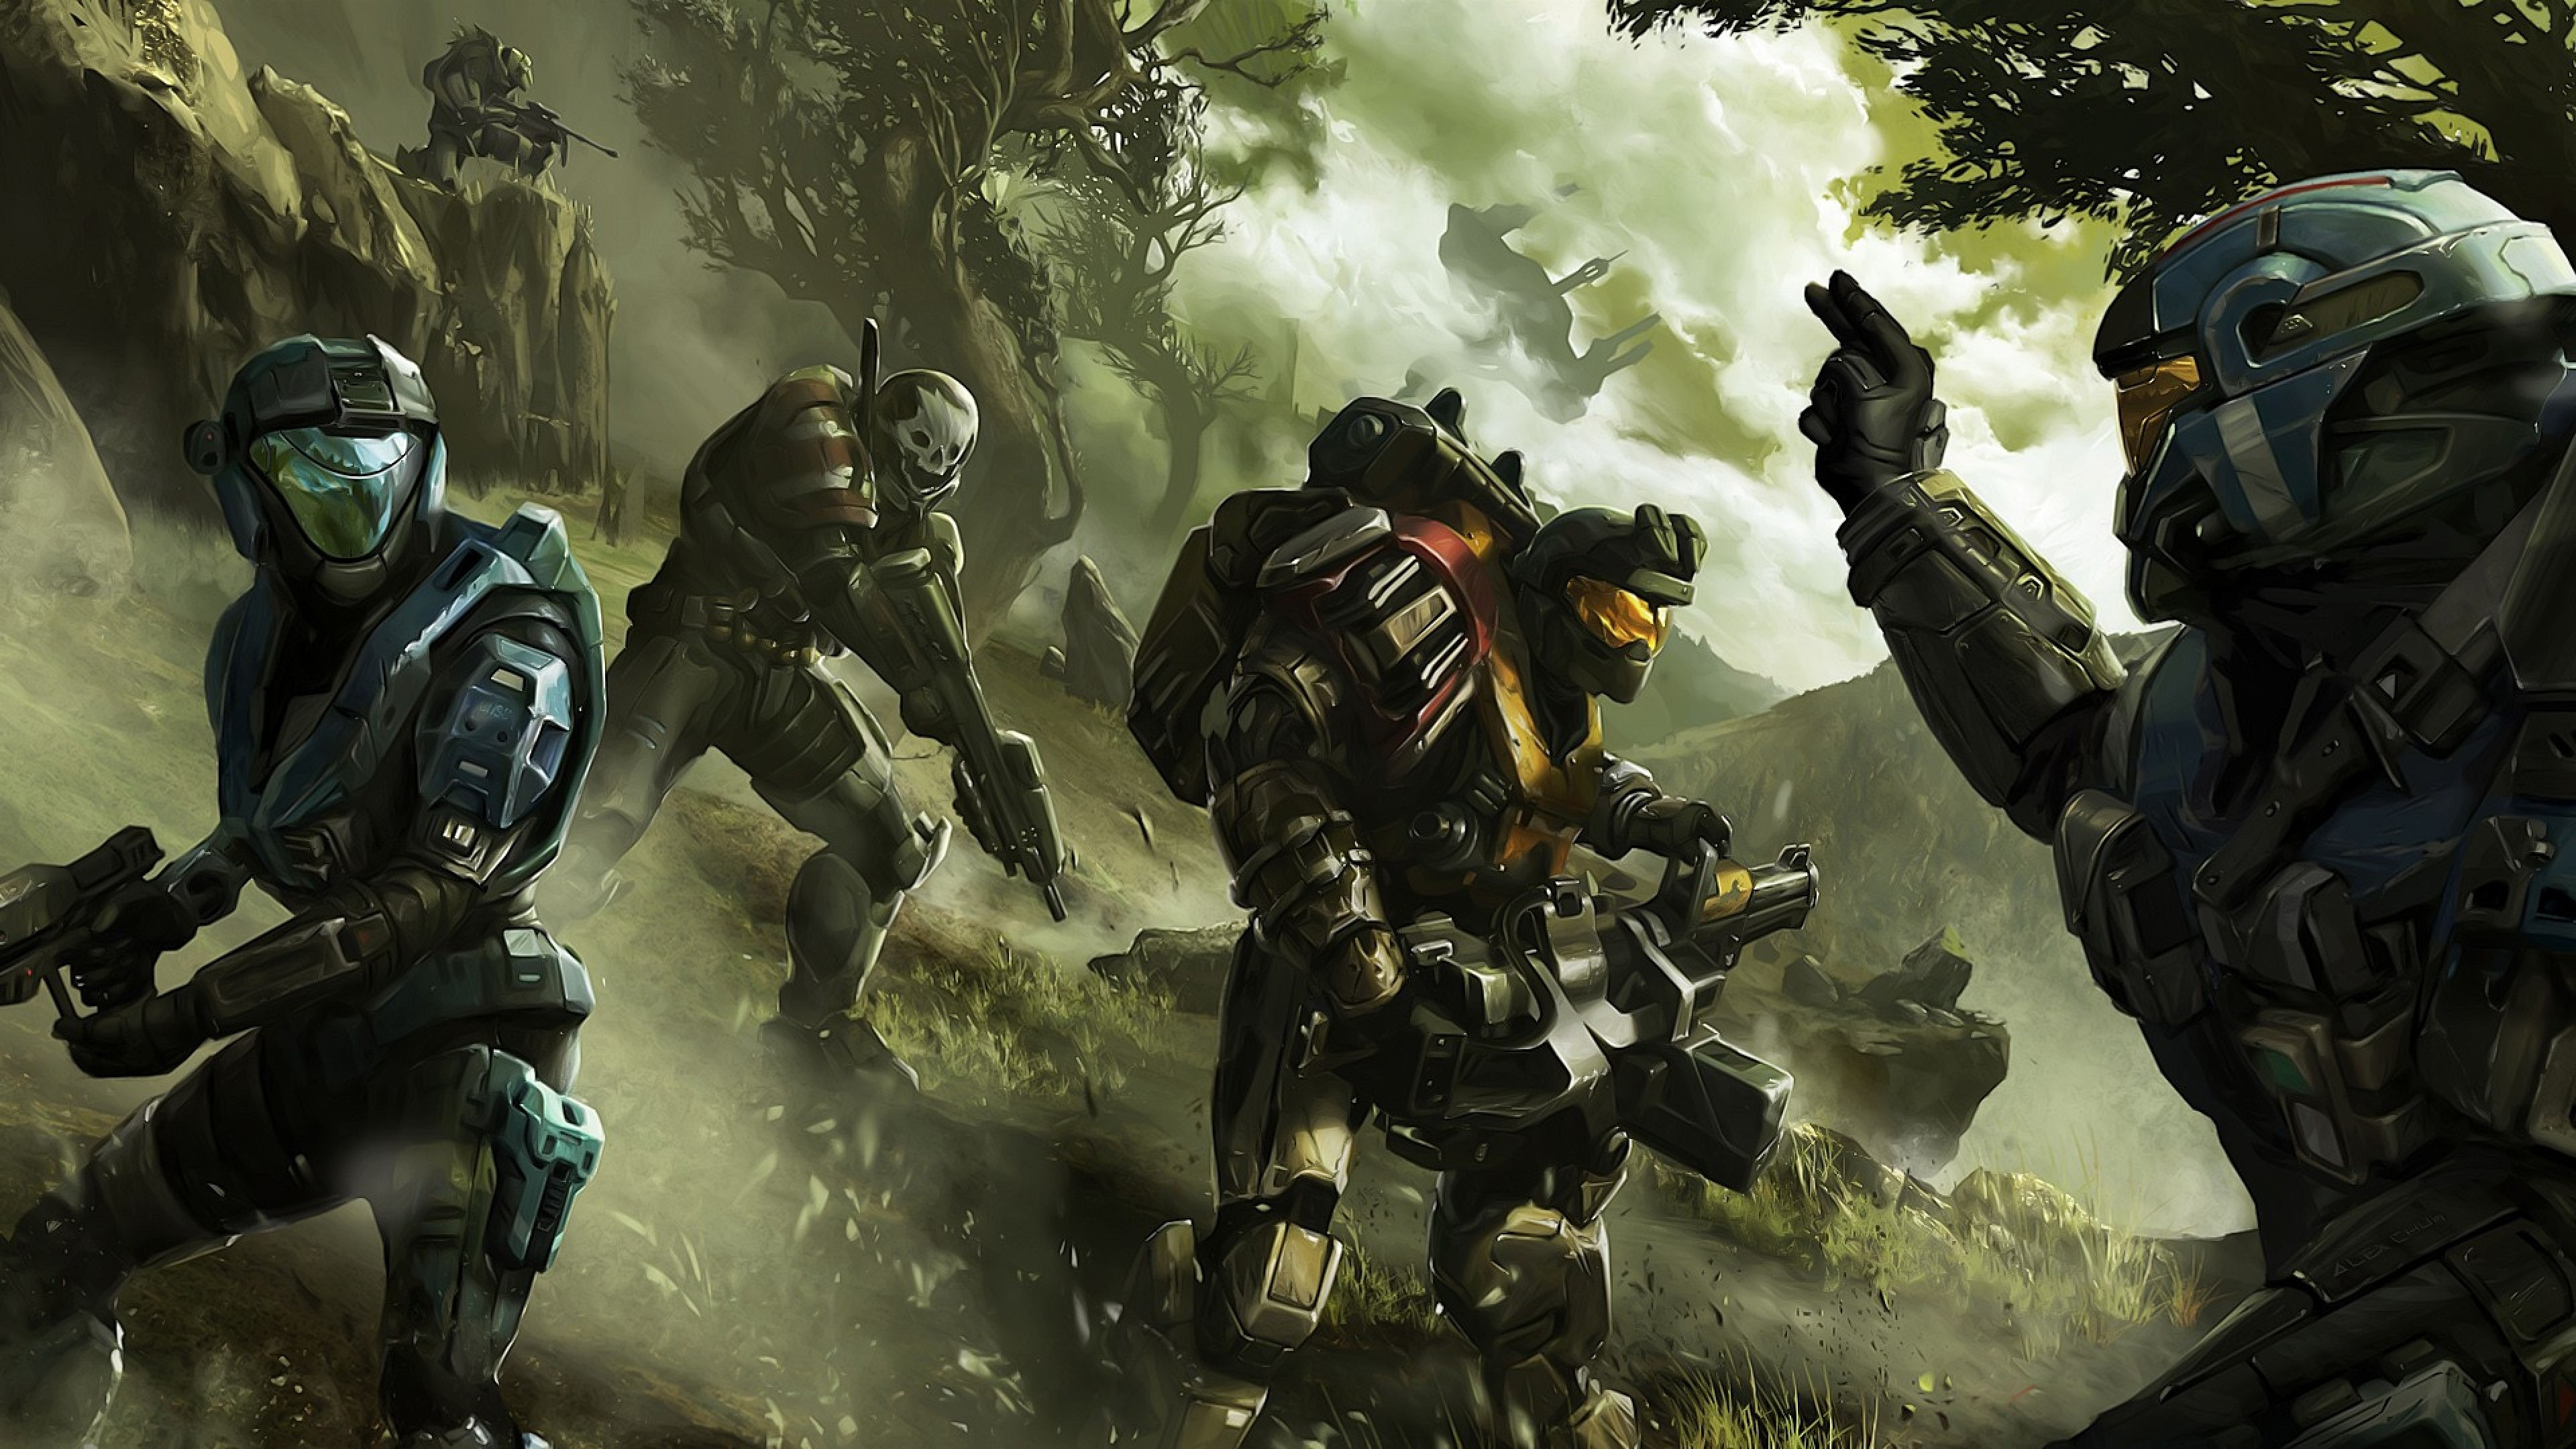 3840x2160 Halo-wallpaper-soldier-commander-trees-